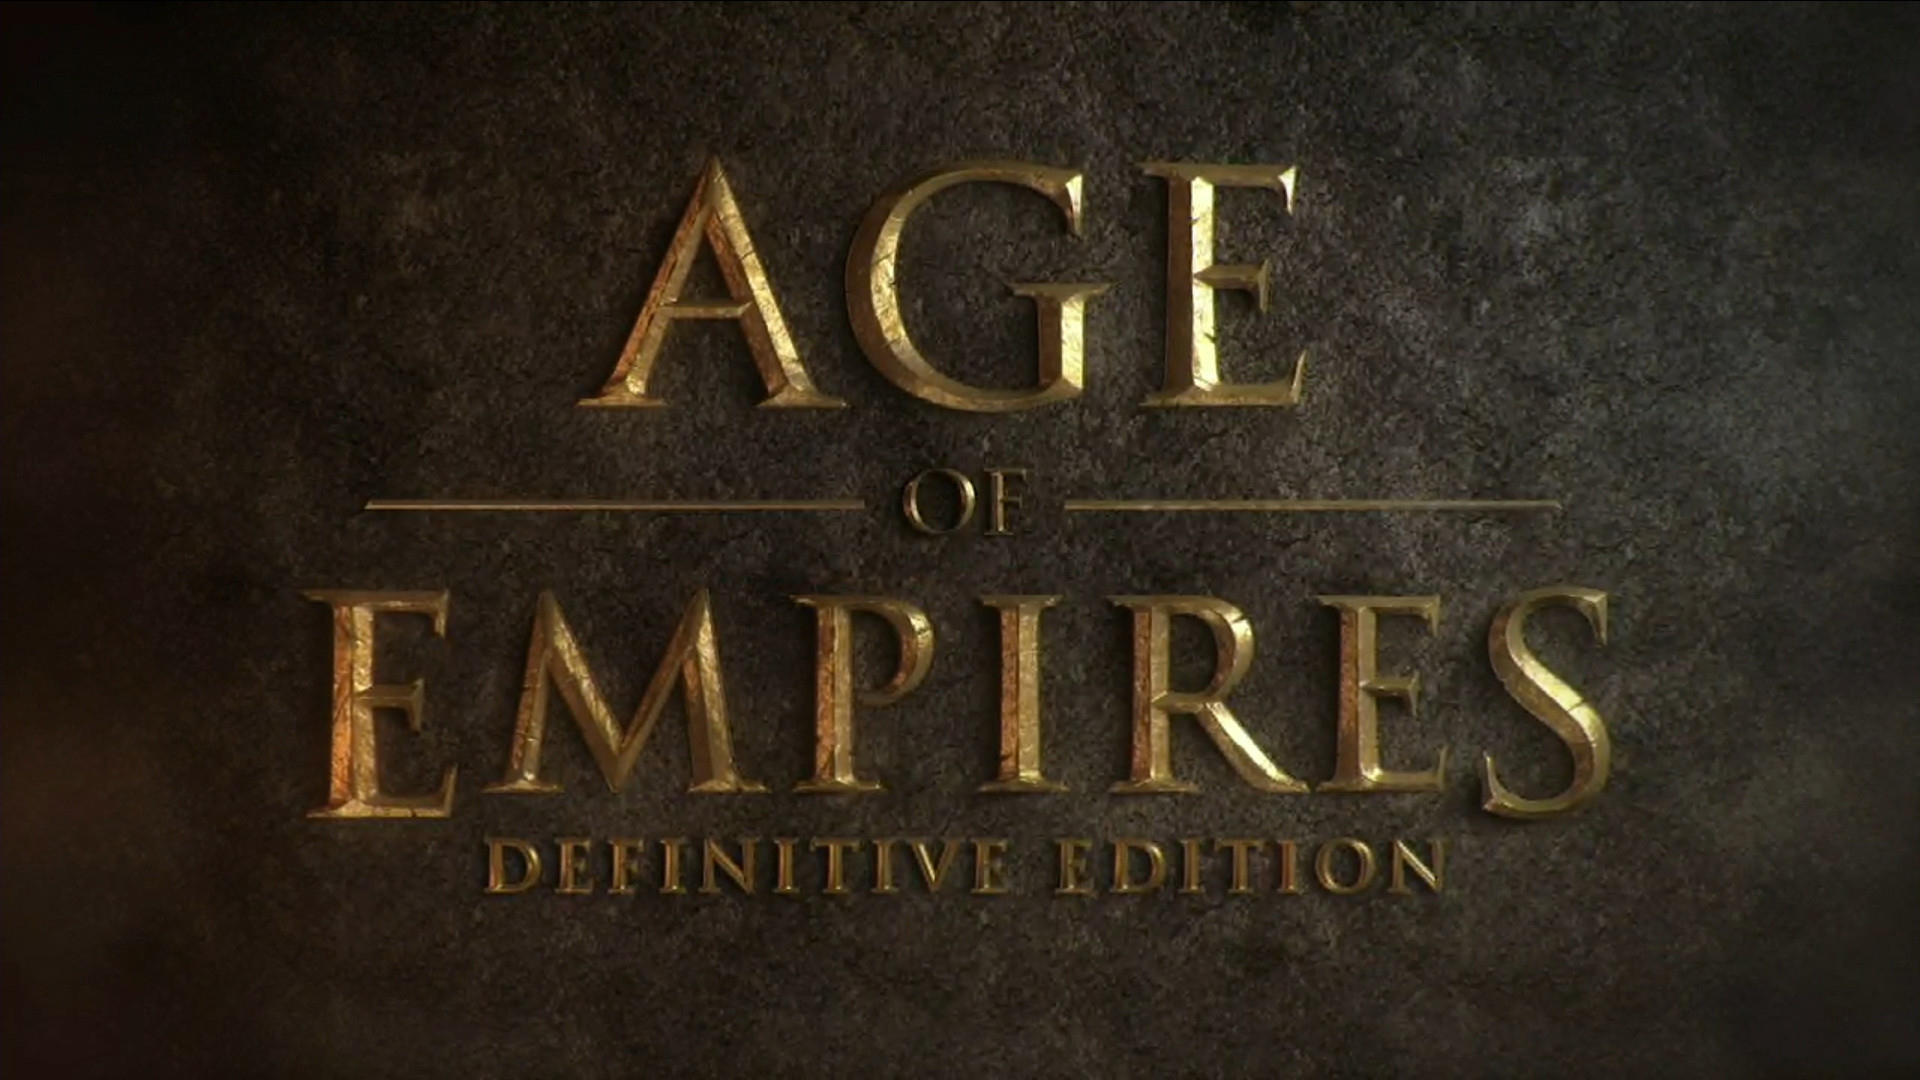 Age of Empires is being remastered in 4K this year (update) - Polygon